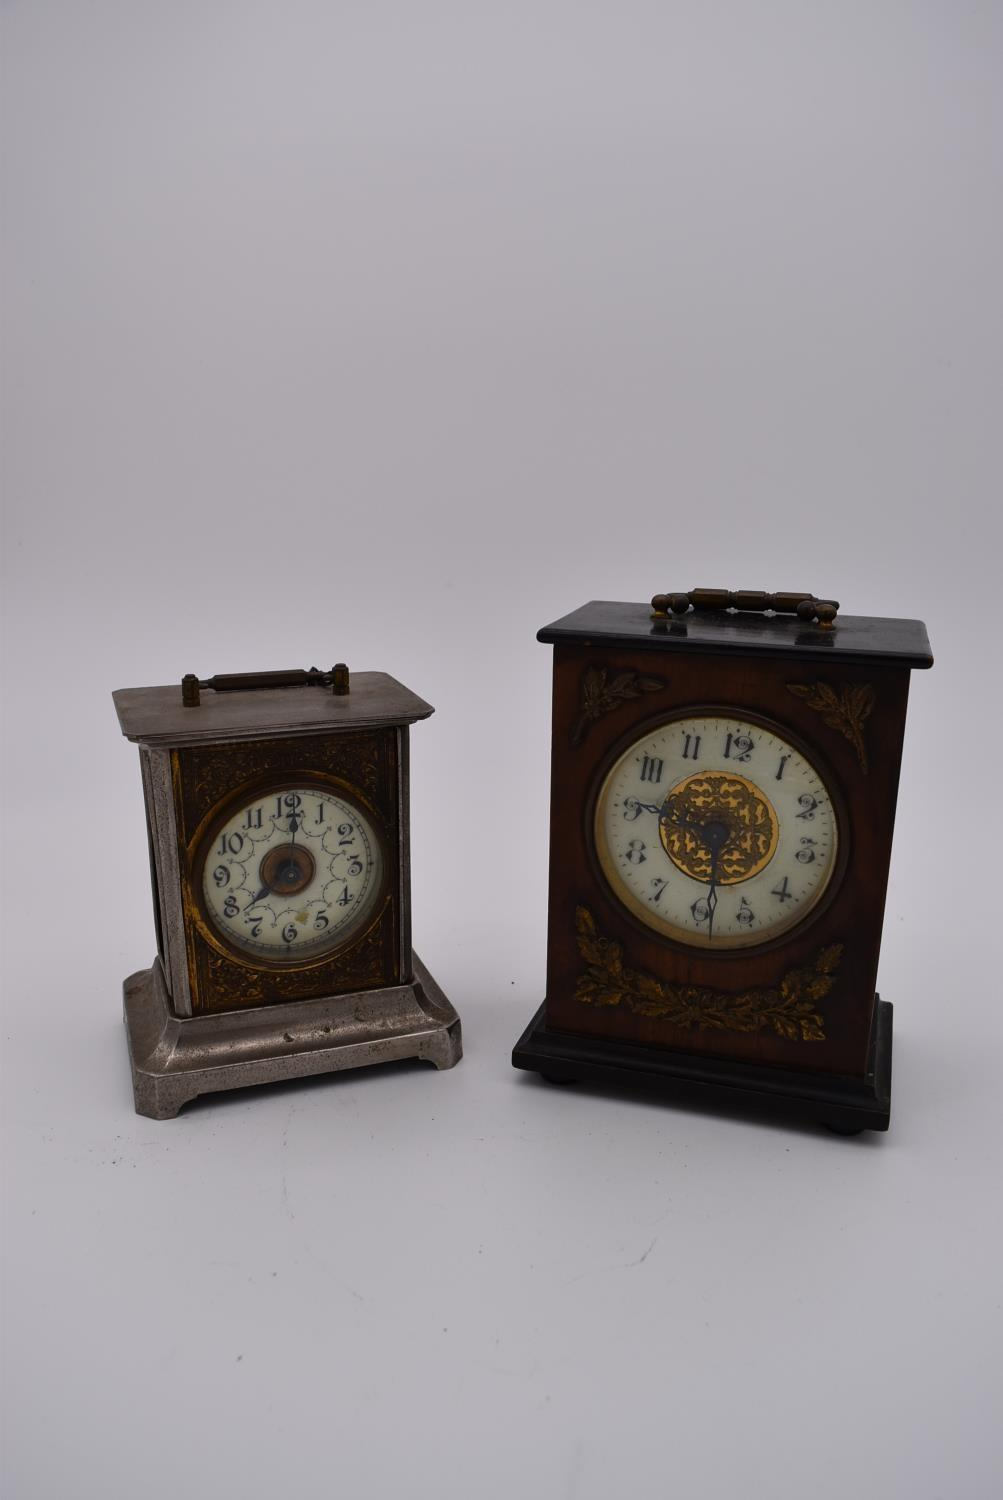 A brass cased carriage clock with engraved brass front with scrolling design and white enamel dial